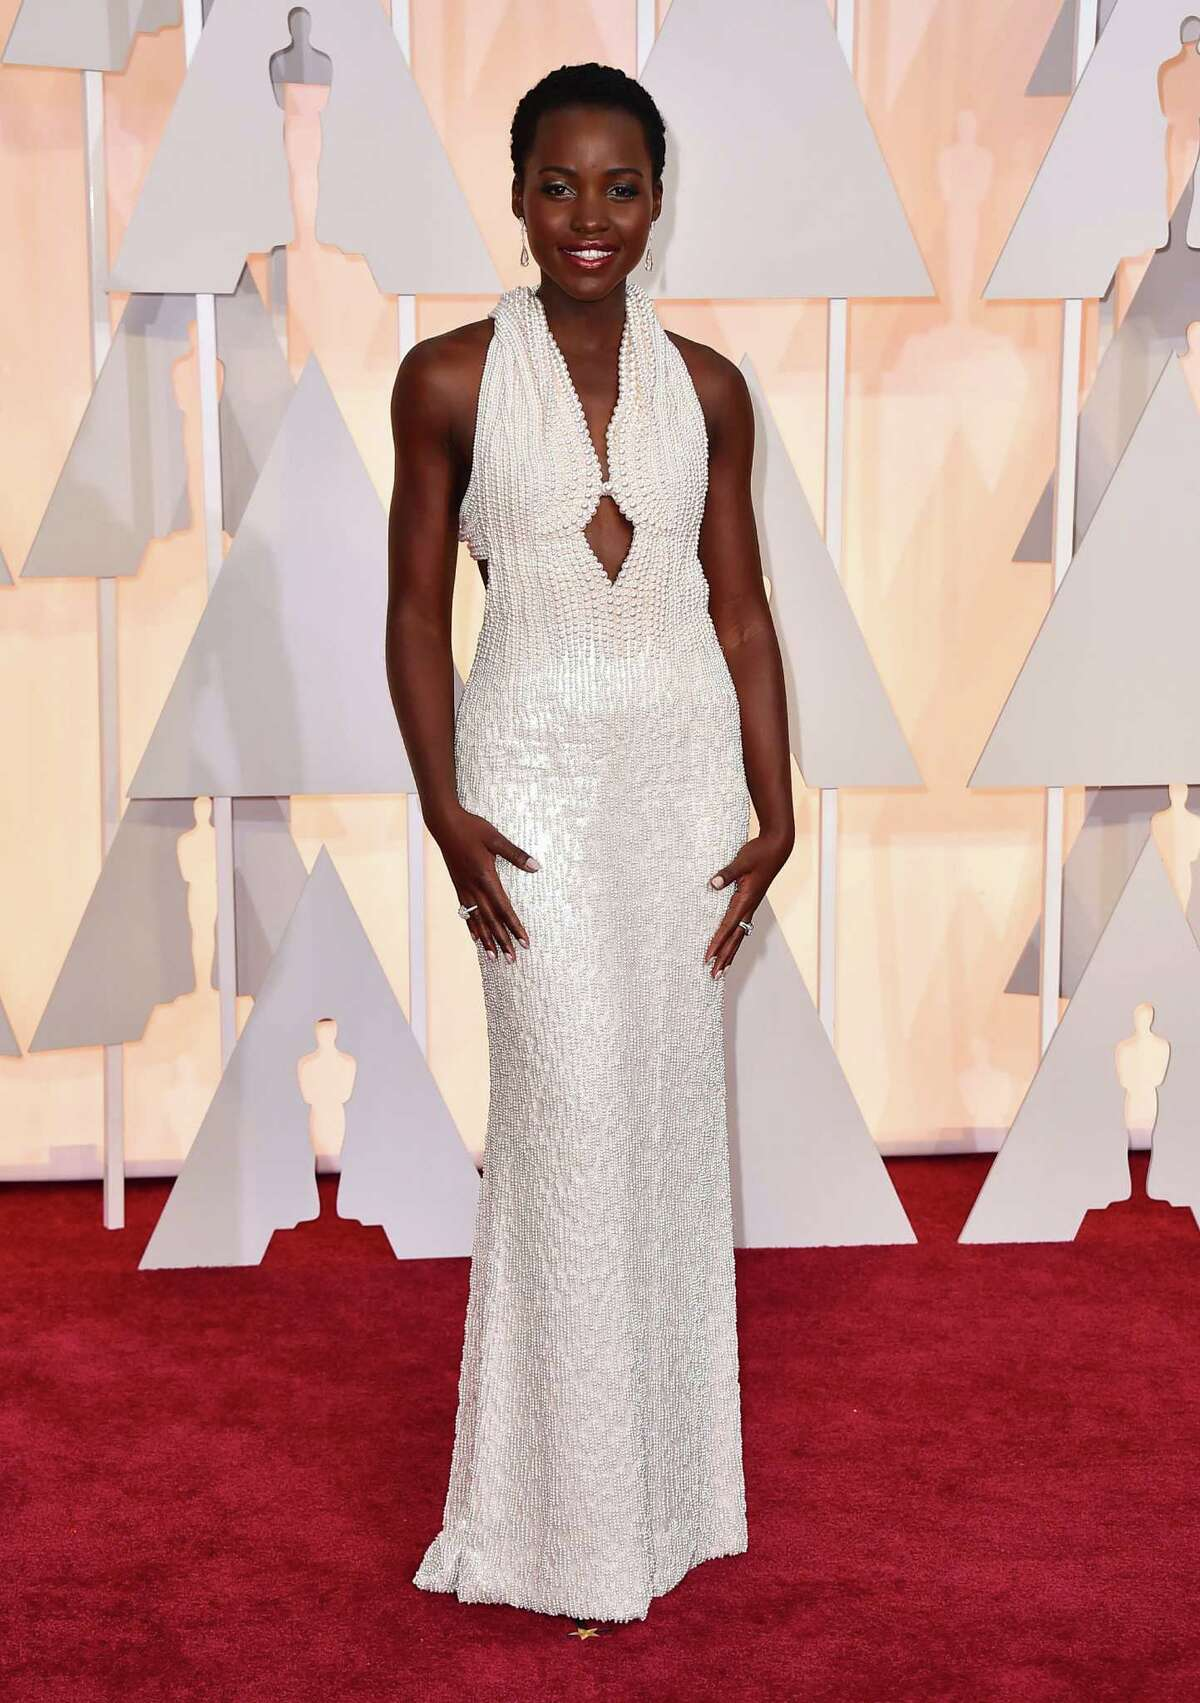 WHITE: Lupita Nyong'o, a presenter at this year's Oscars and a 2014 Best Supporting Actress winner, wore a Calvin Klein Collection dress that had 6,000 pearls sewn on.